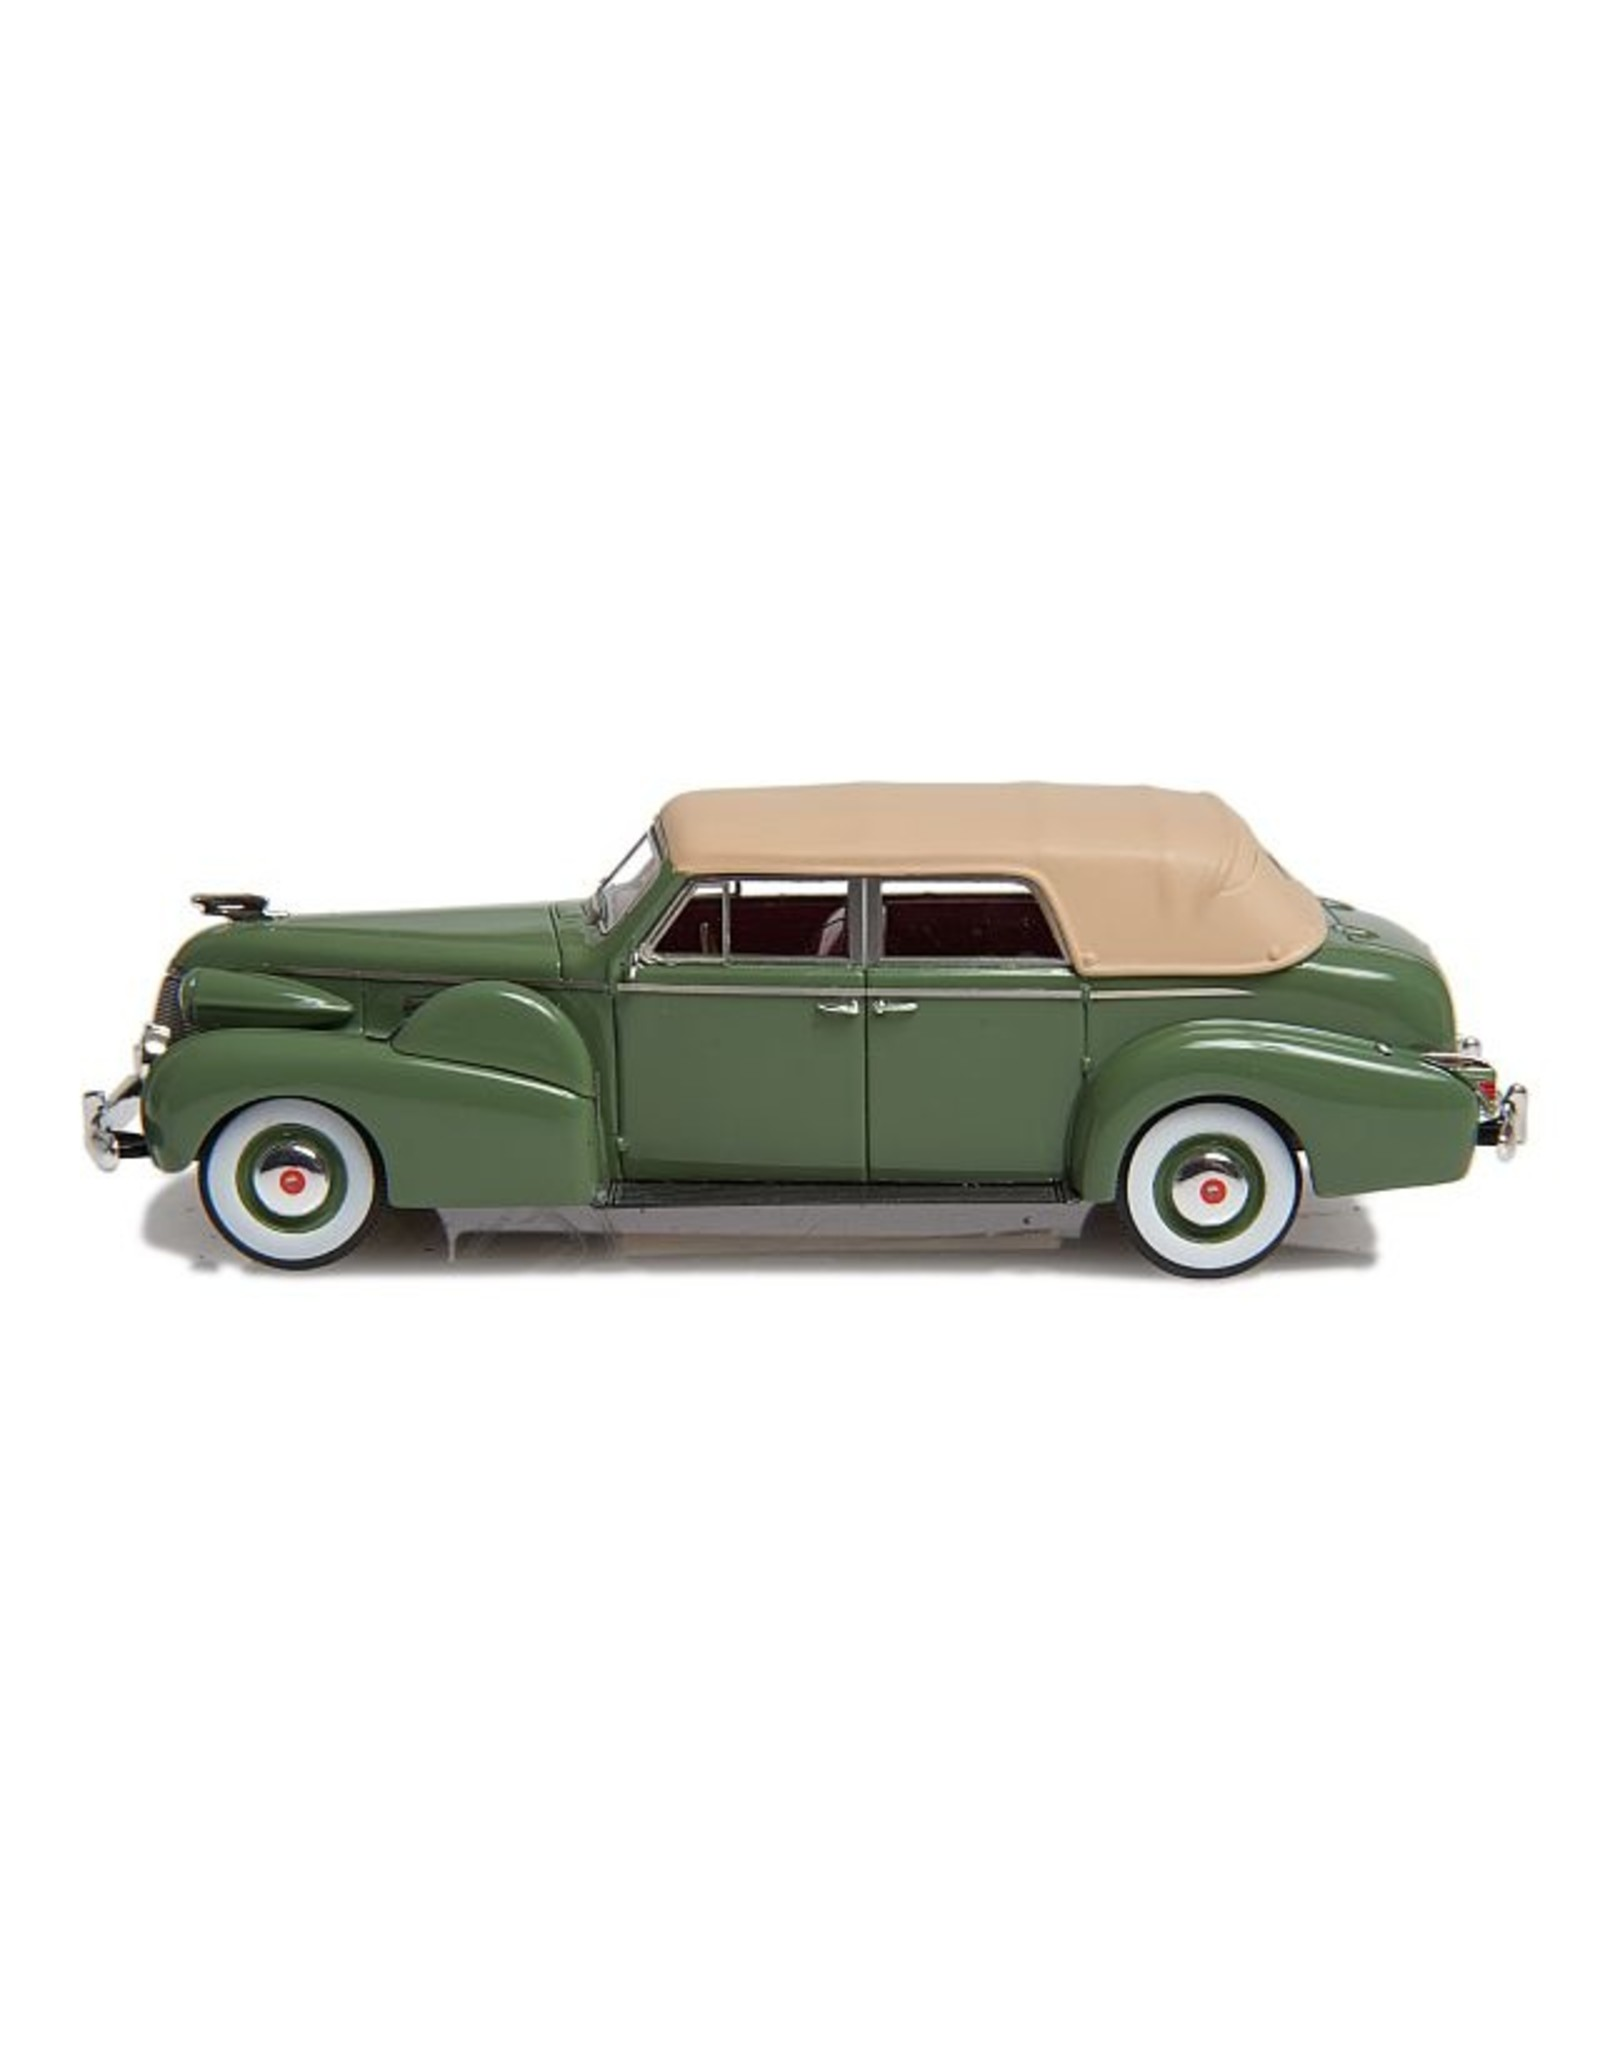 Cadillac by Fleetwood. CADILLAC SERIE 75 CABRIOLET BY FLEETWOOD(1939)closed roof-green